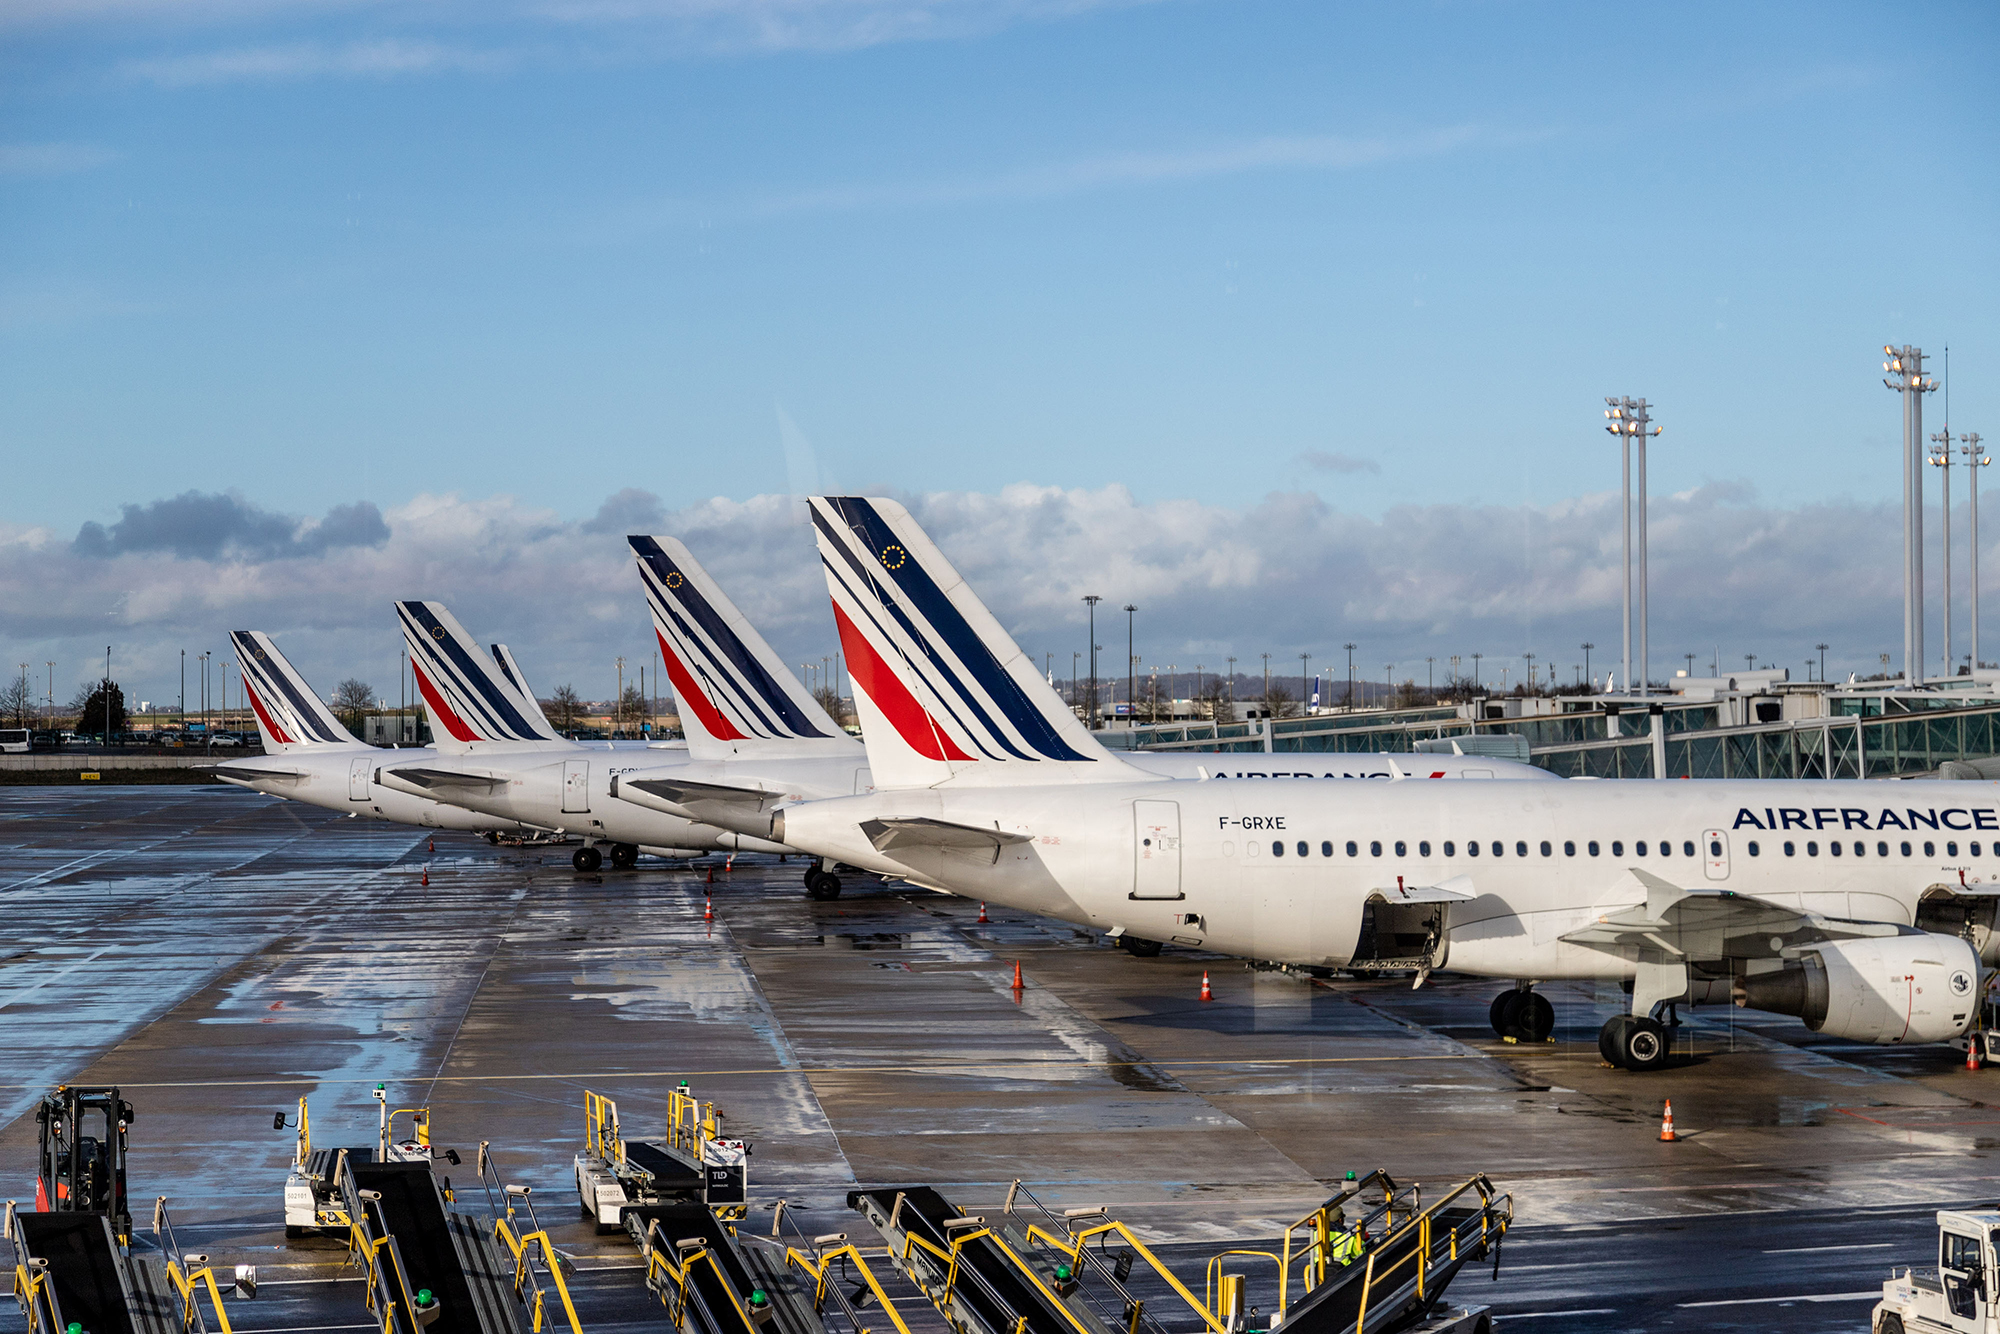 Air France passenger aircraft stand on the tarmac at Charles de Gaulle airport in Roissy, France, on Tuesday, January 28.